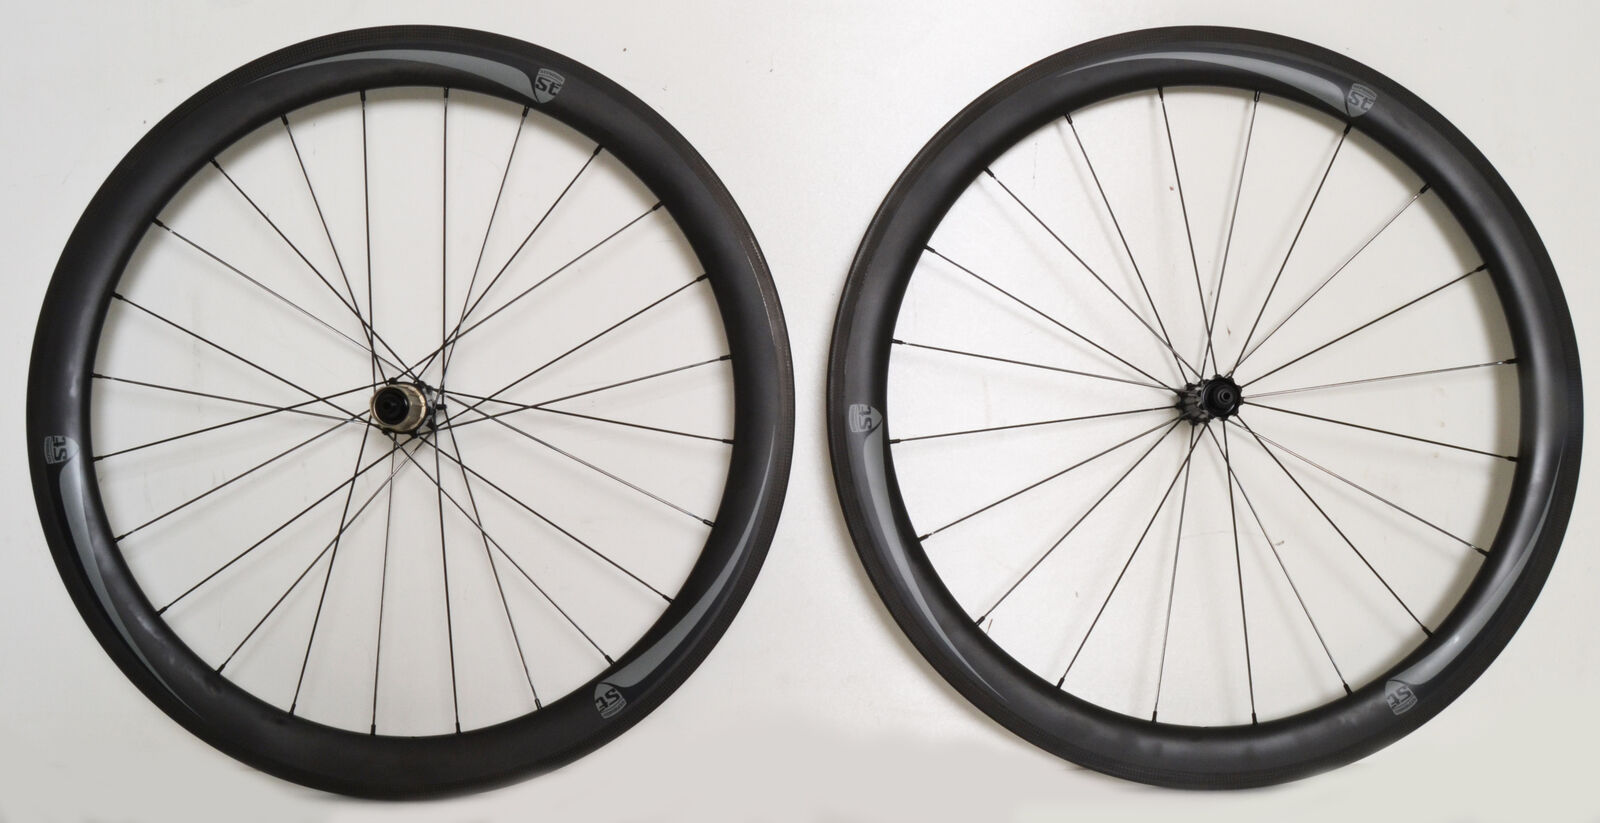 STRADALLI CARBON CLINCHER ROAD BICYCLE BIKE WHEELSET 50MM RADIAL LACE AERO LIGHT